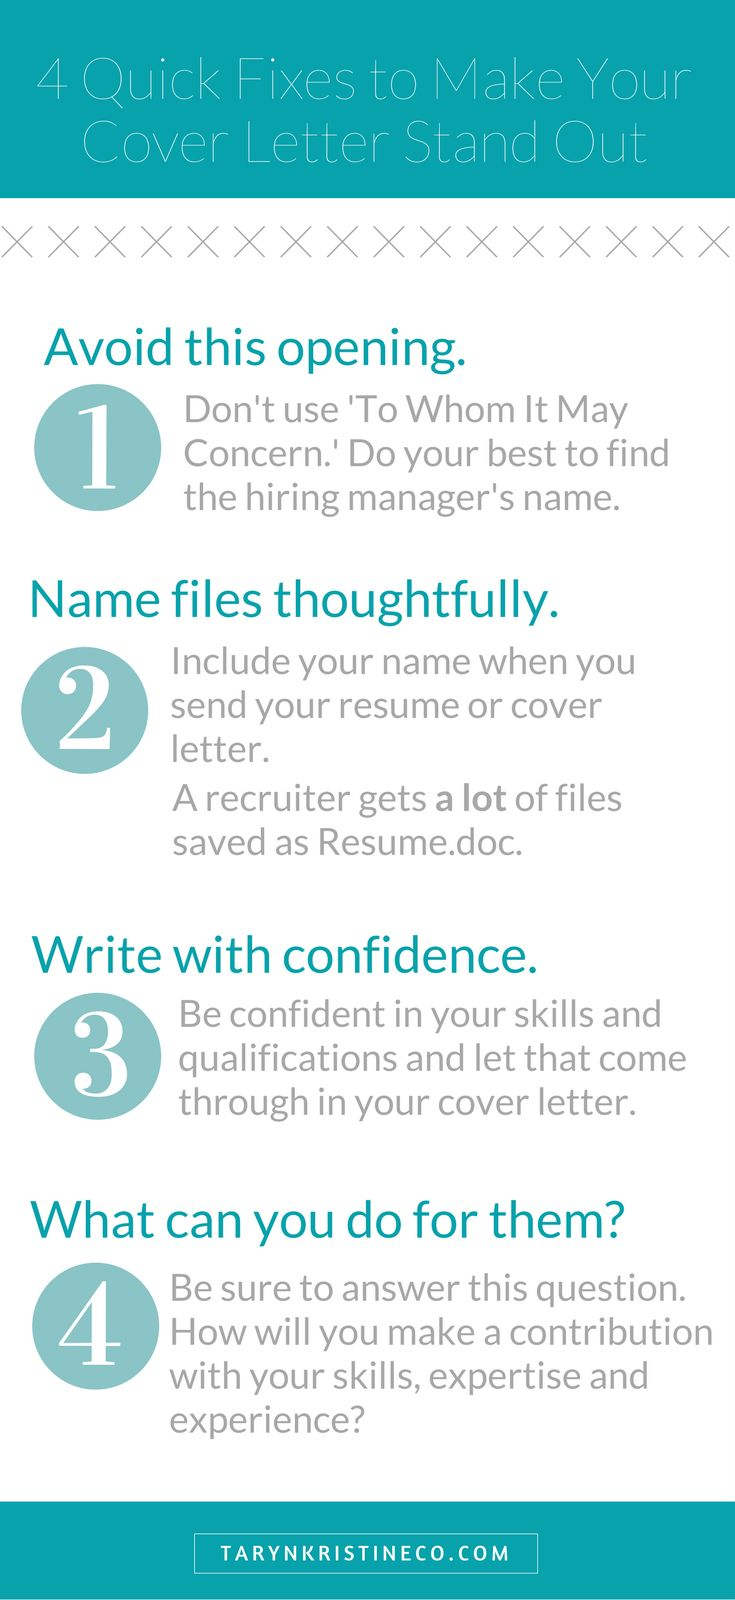 Writing a Cover Letter that Stands Out